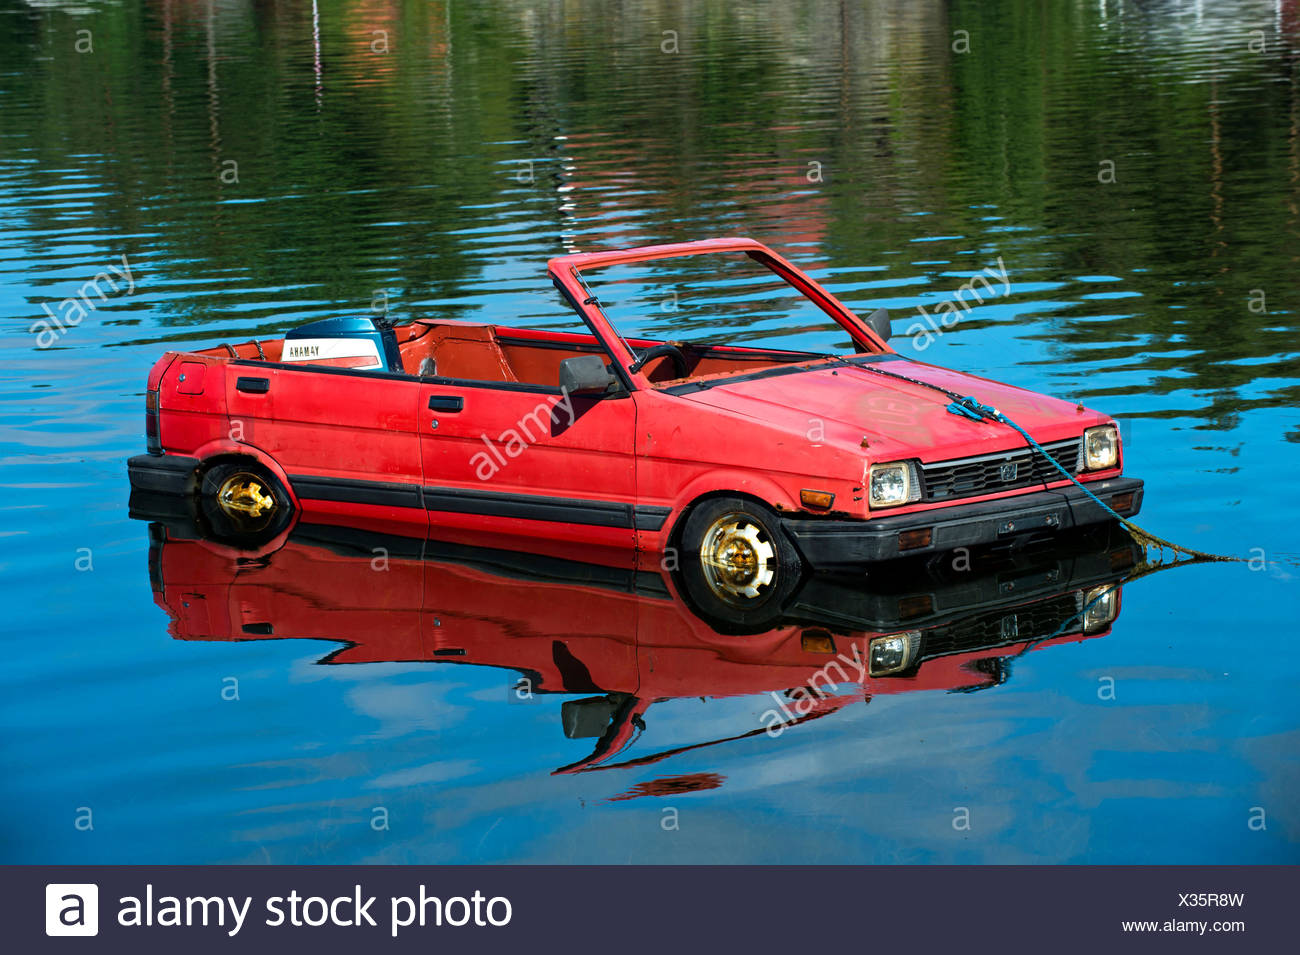 Subaru car turned into a boat, floating on a lake, Norway - Stock Image